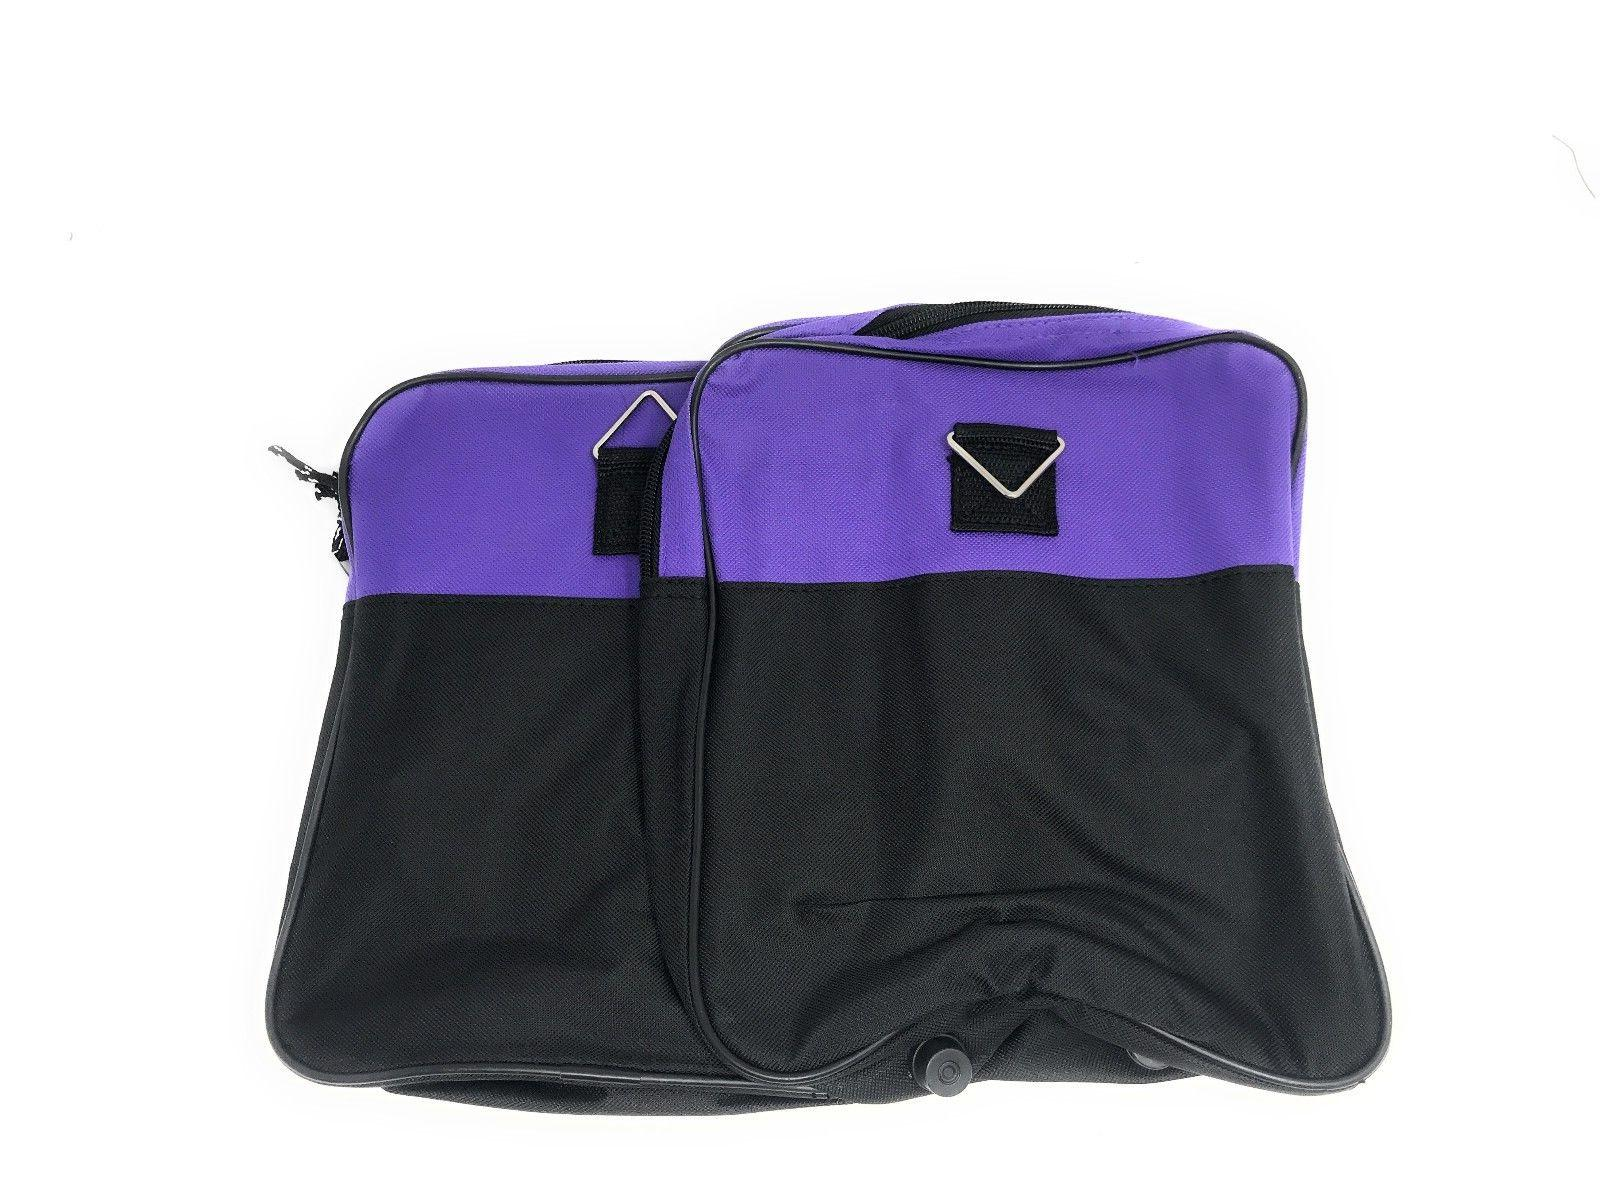 Duffle Carry-on Luggage Shoulder